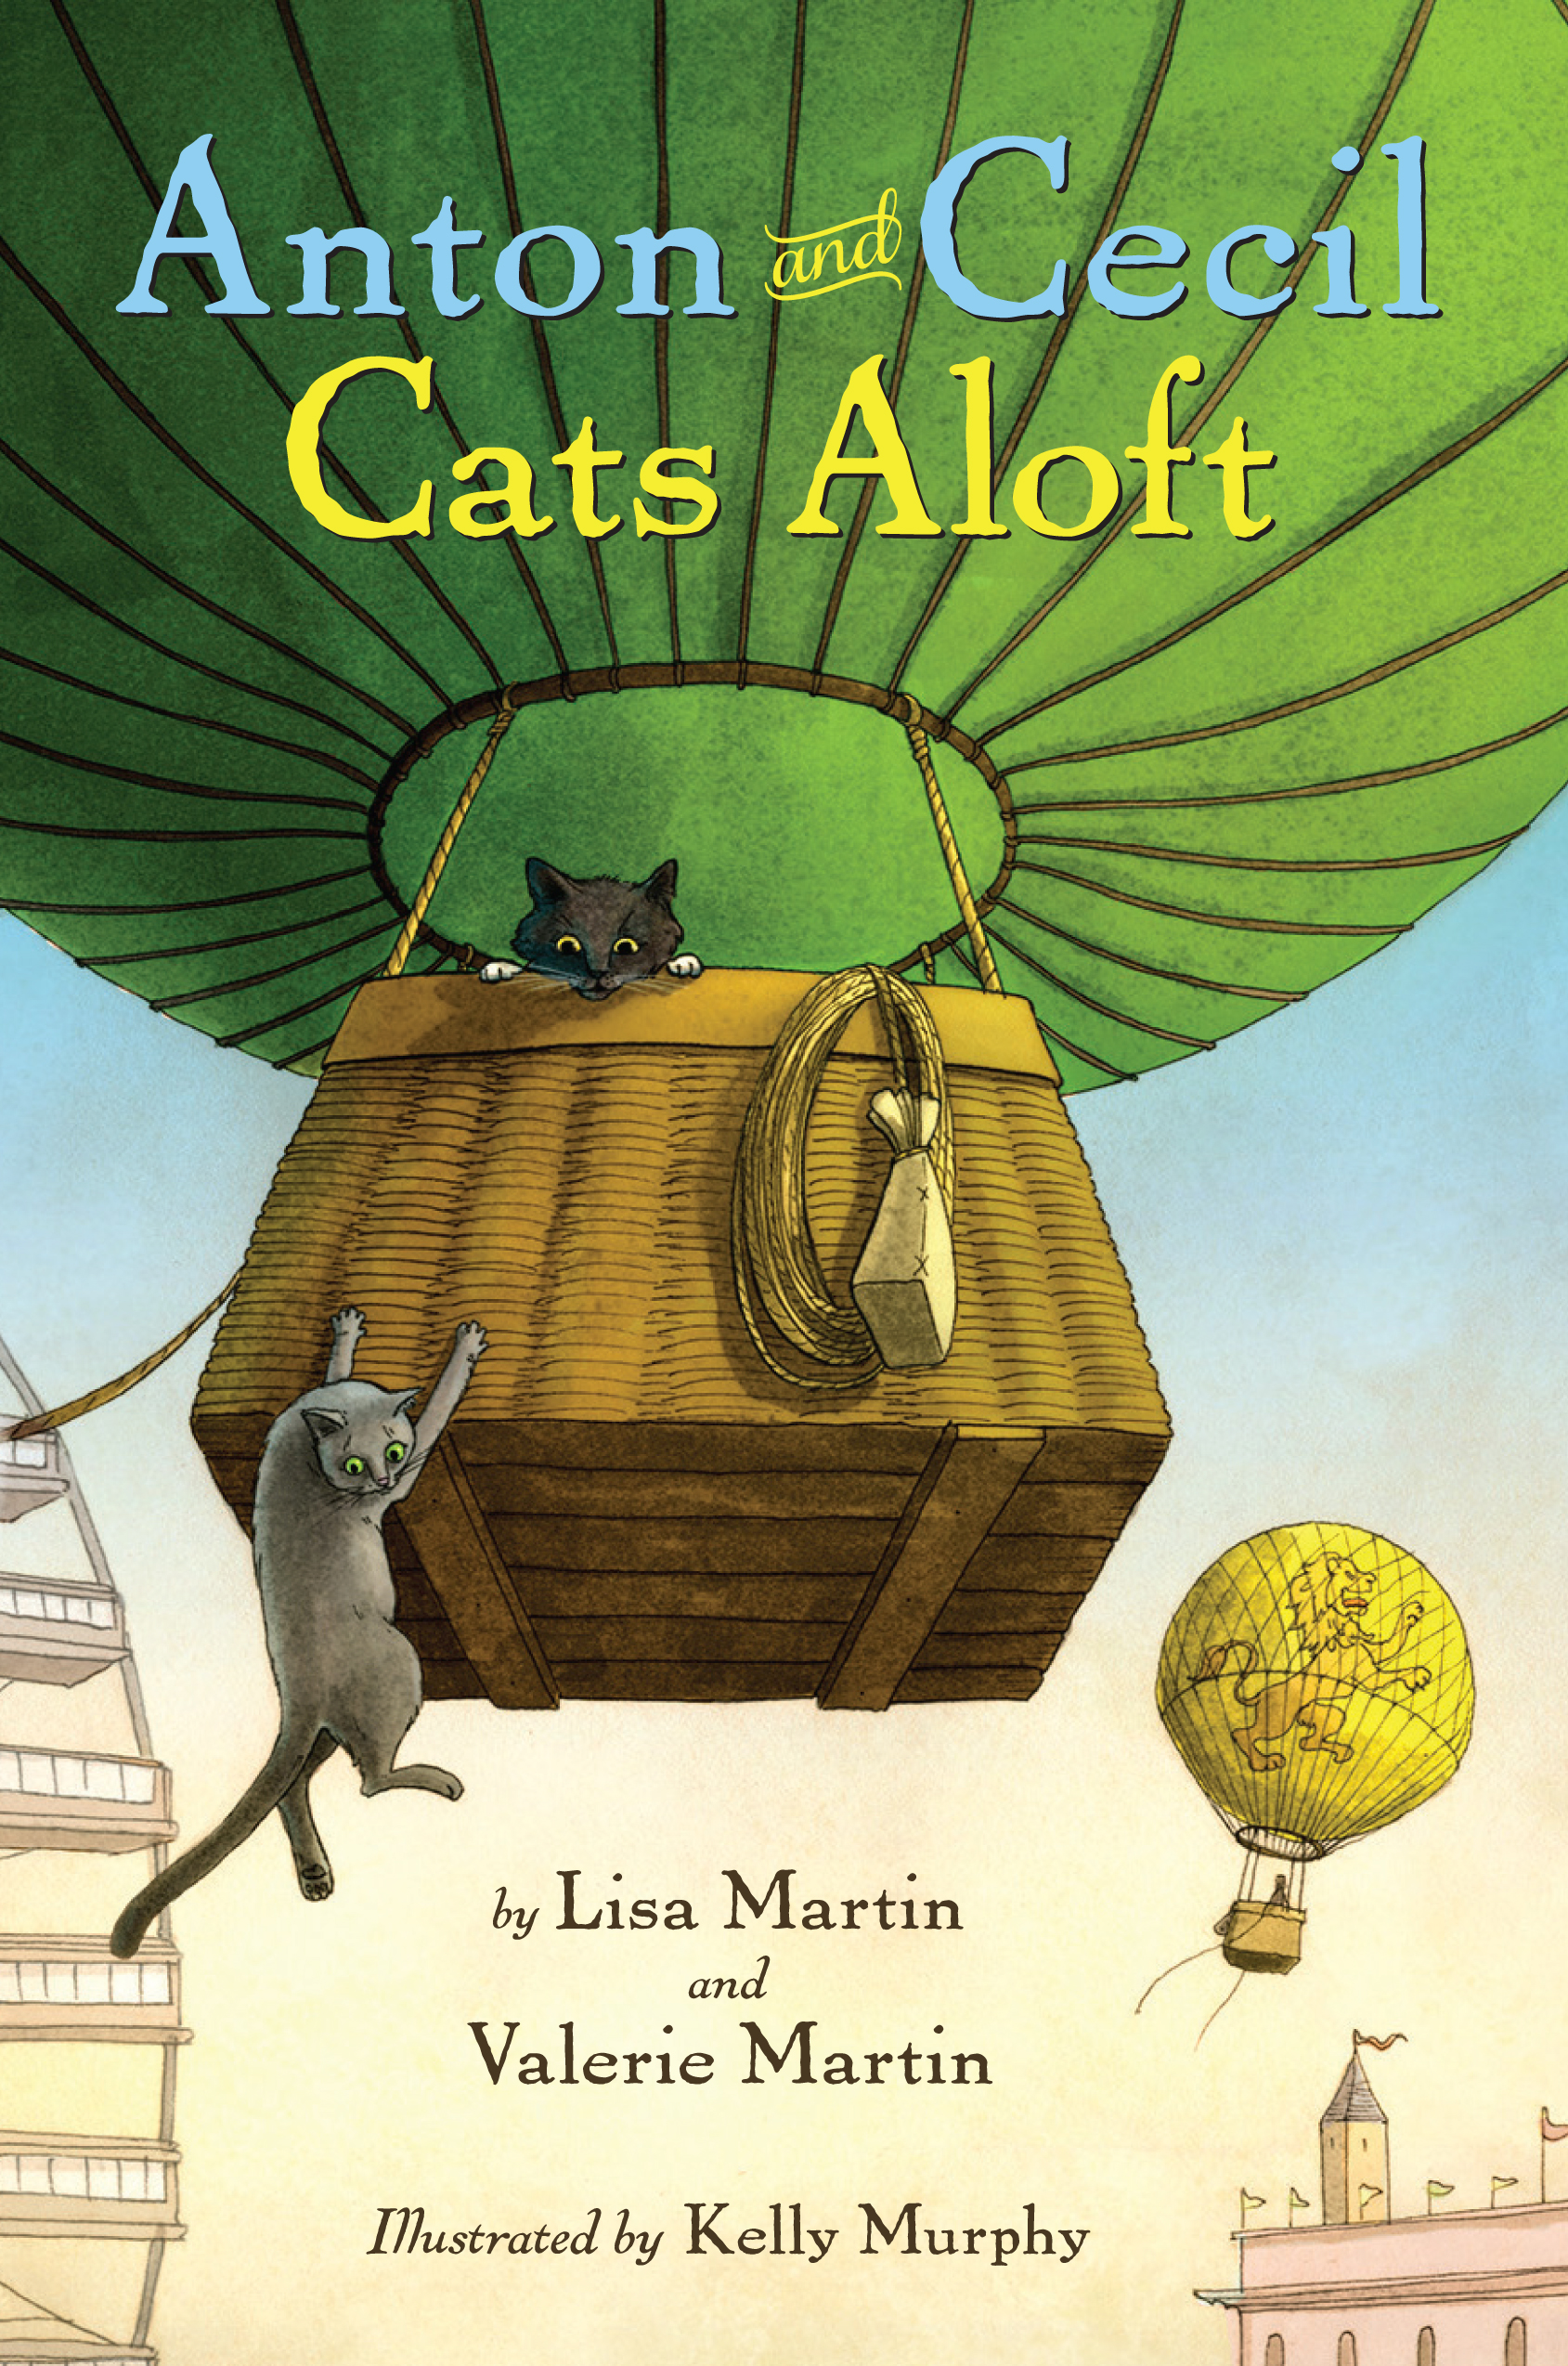 Anton and Cecil: Cats Aloft